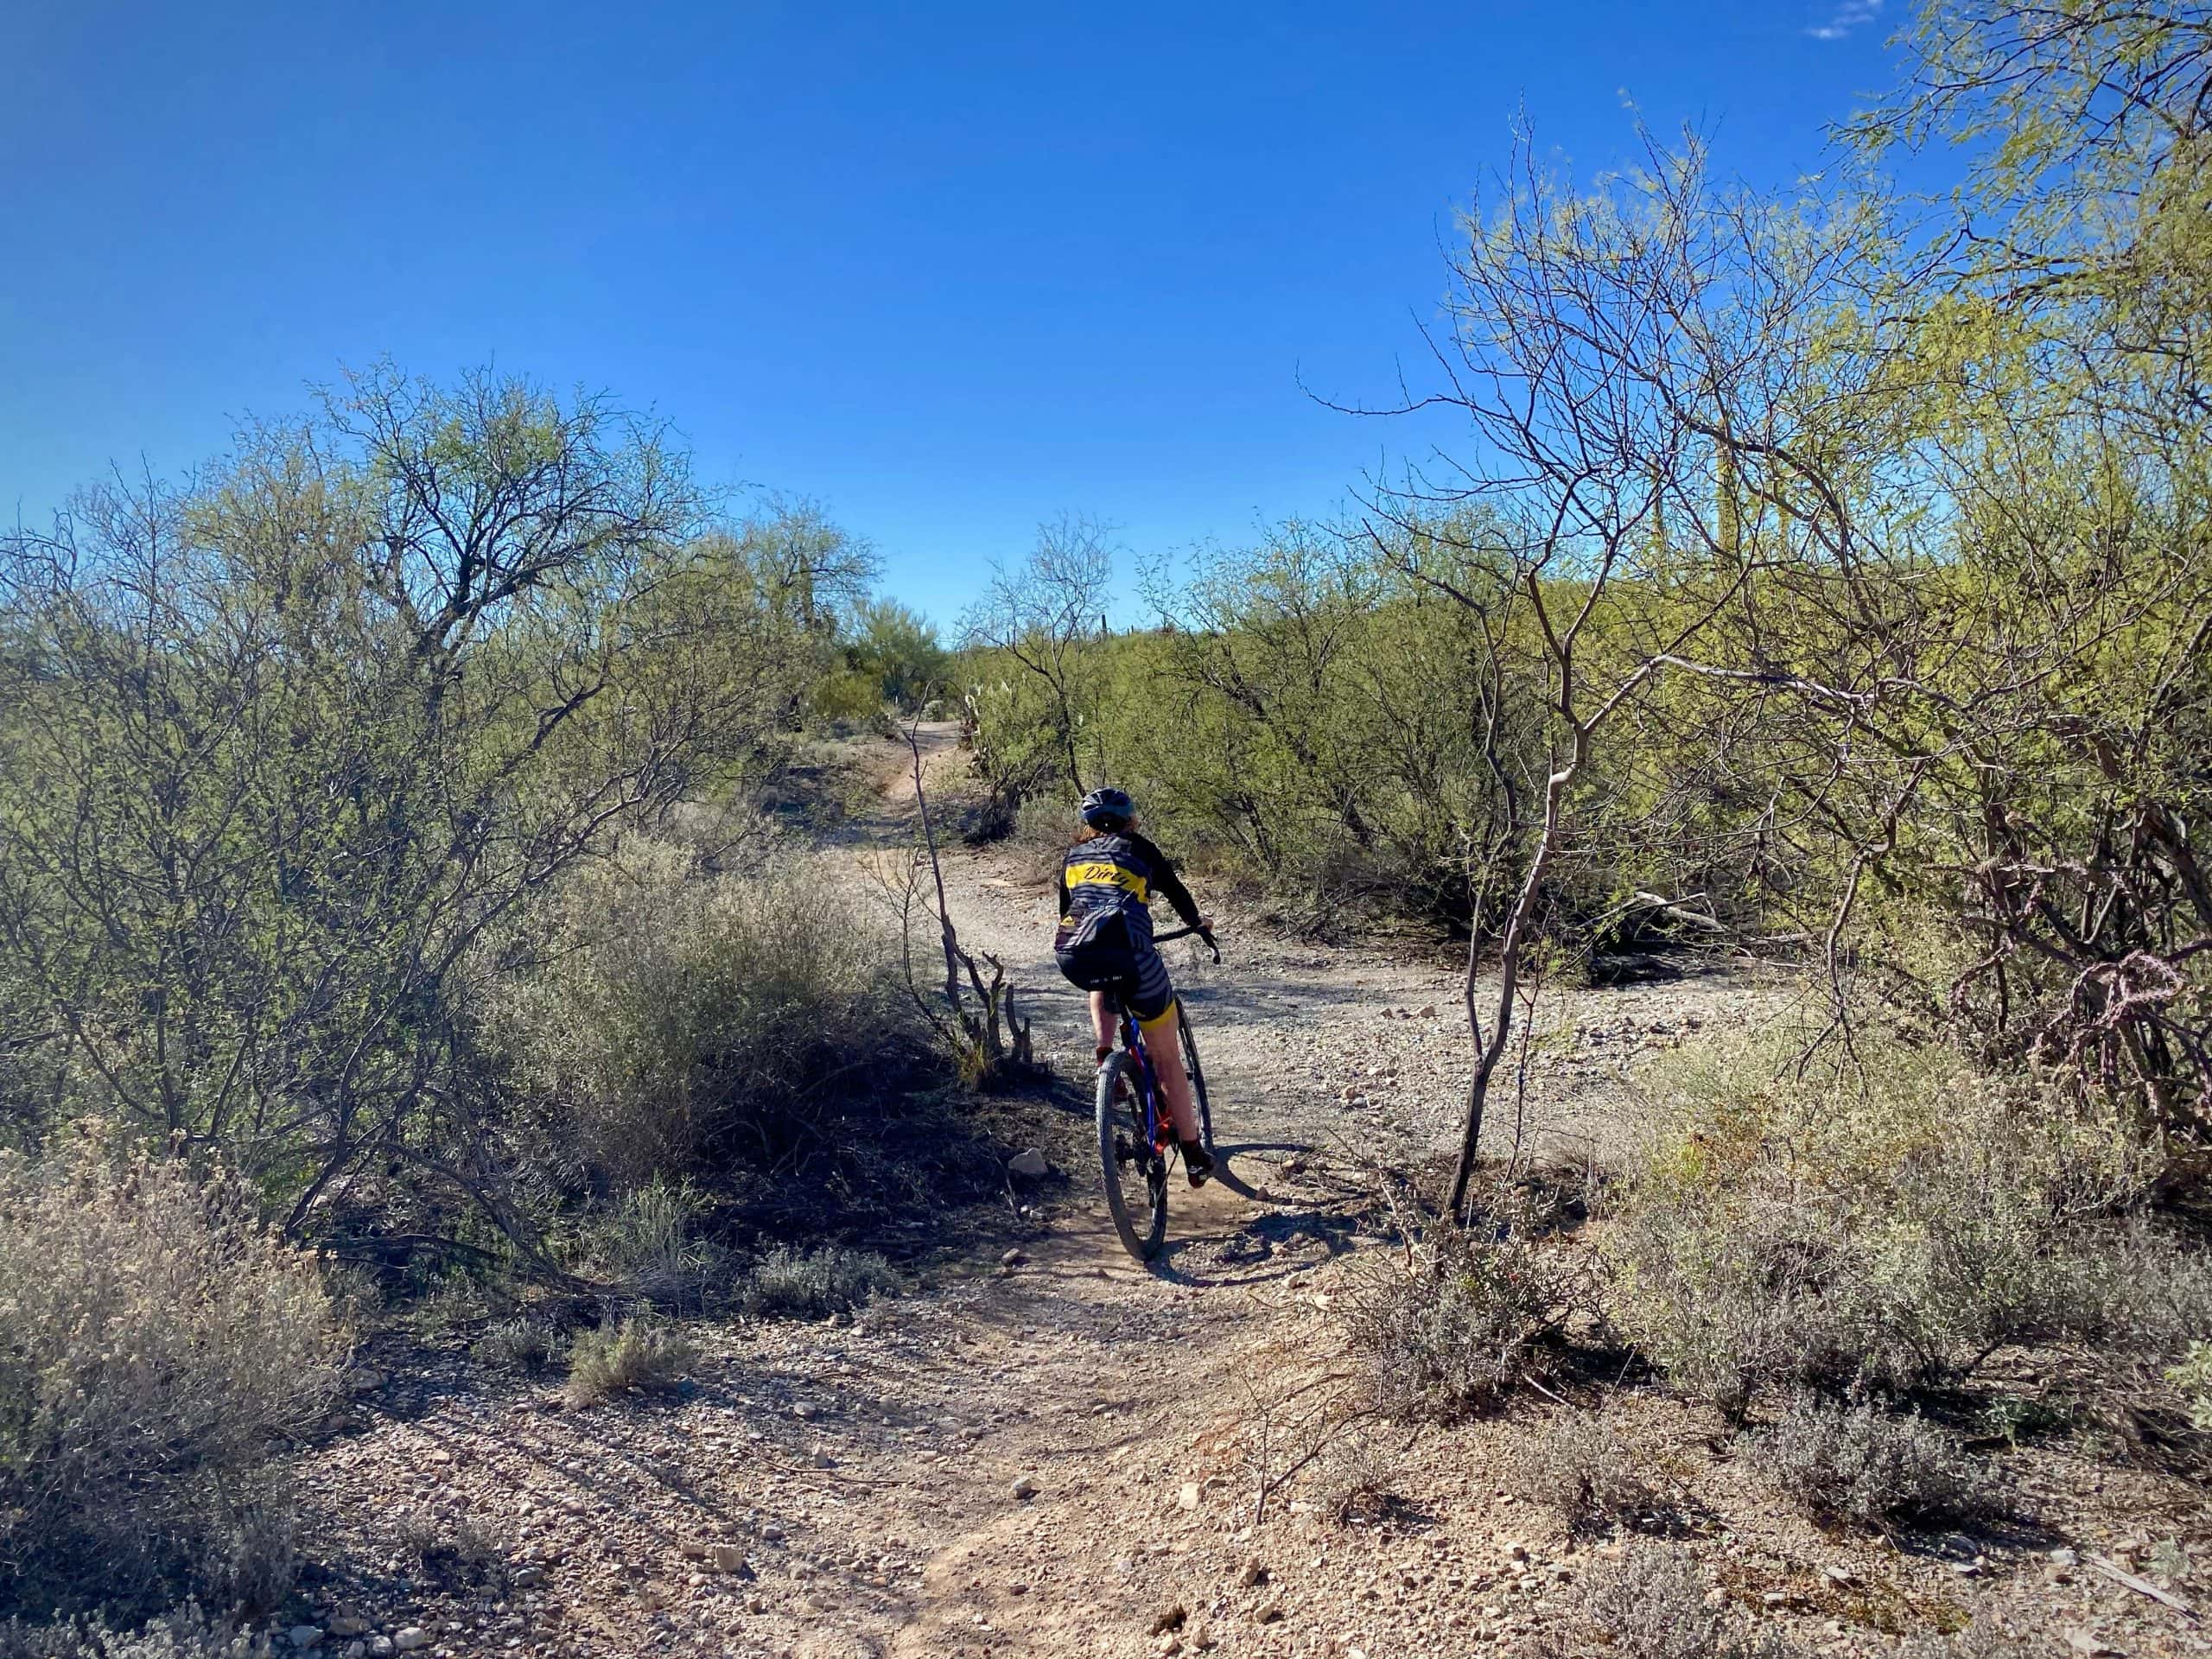 Cyclist riding through wash on gravel bike in Saguaro National Park (East).